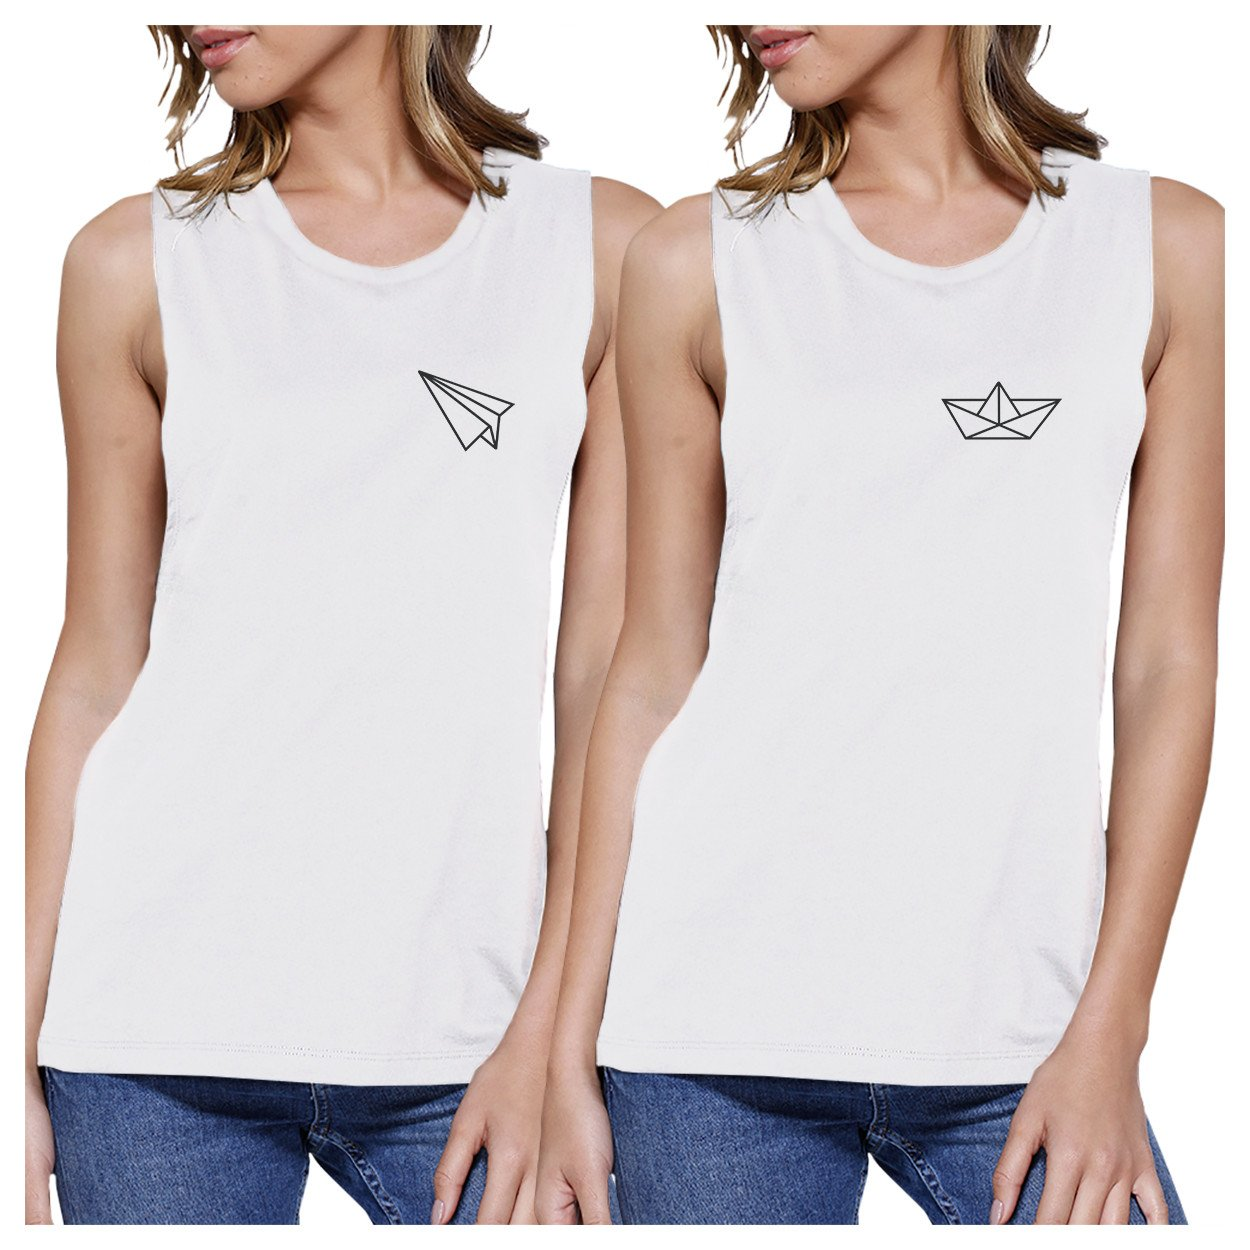 Origami Plane And Boat BFF Matching White Muscle Tops